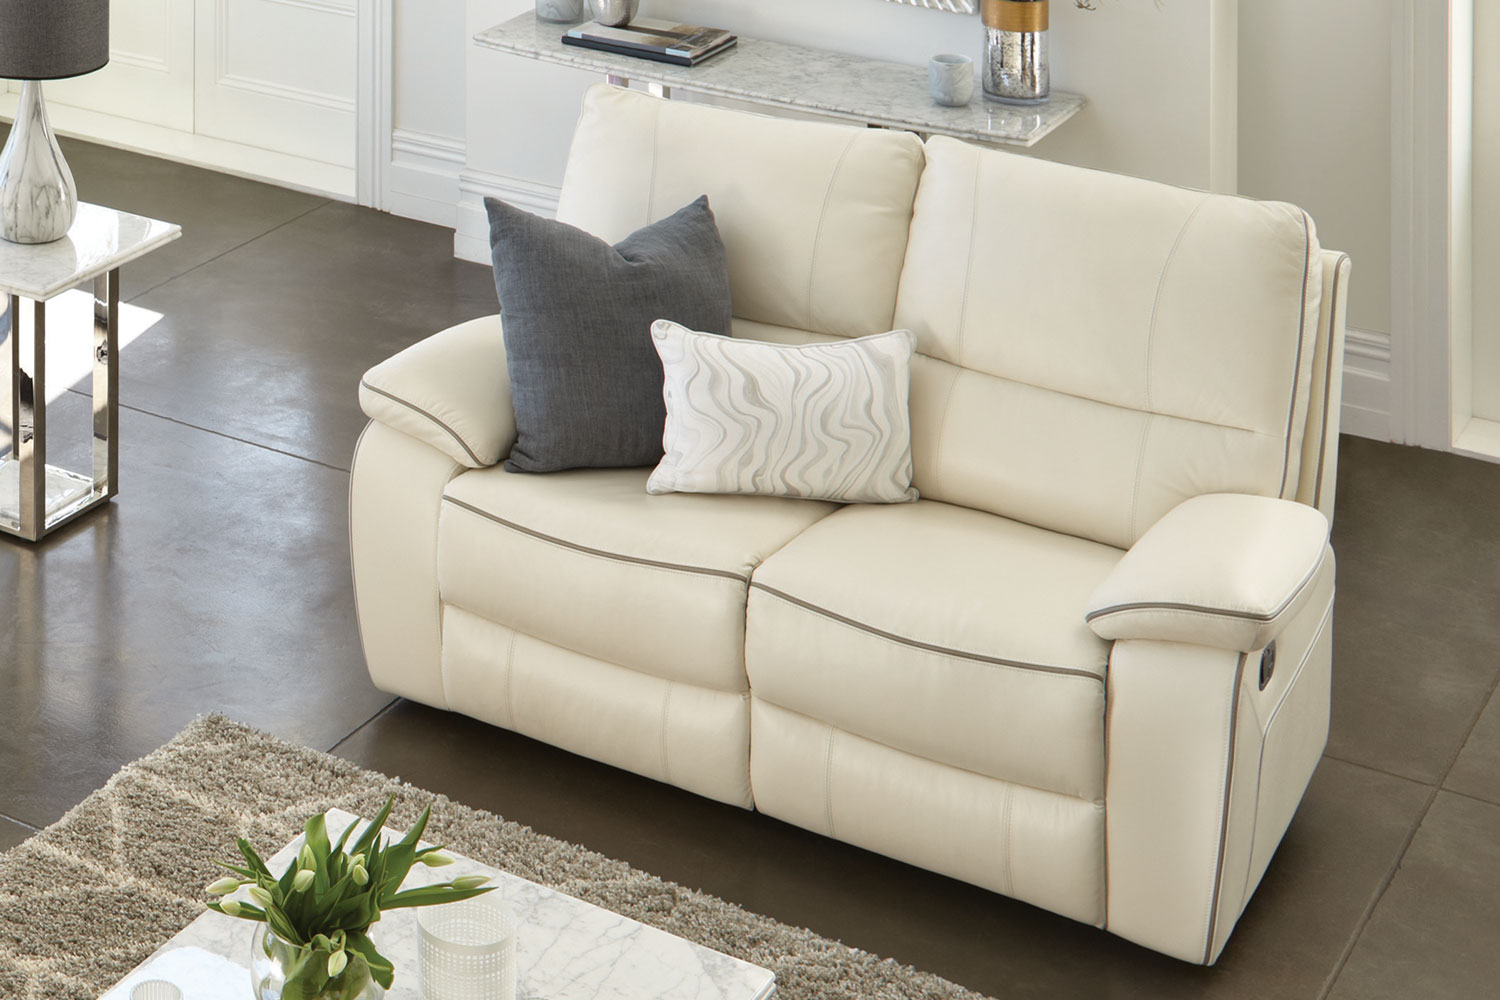 Leather Sofa New Zealand Strata 2 Seater Leather Recliner Sofa By Synargy